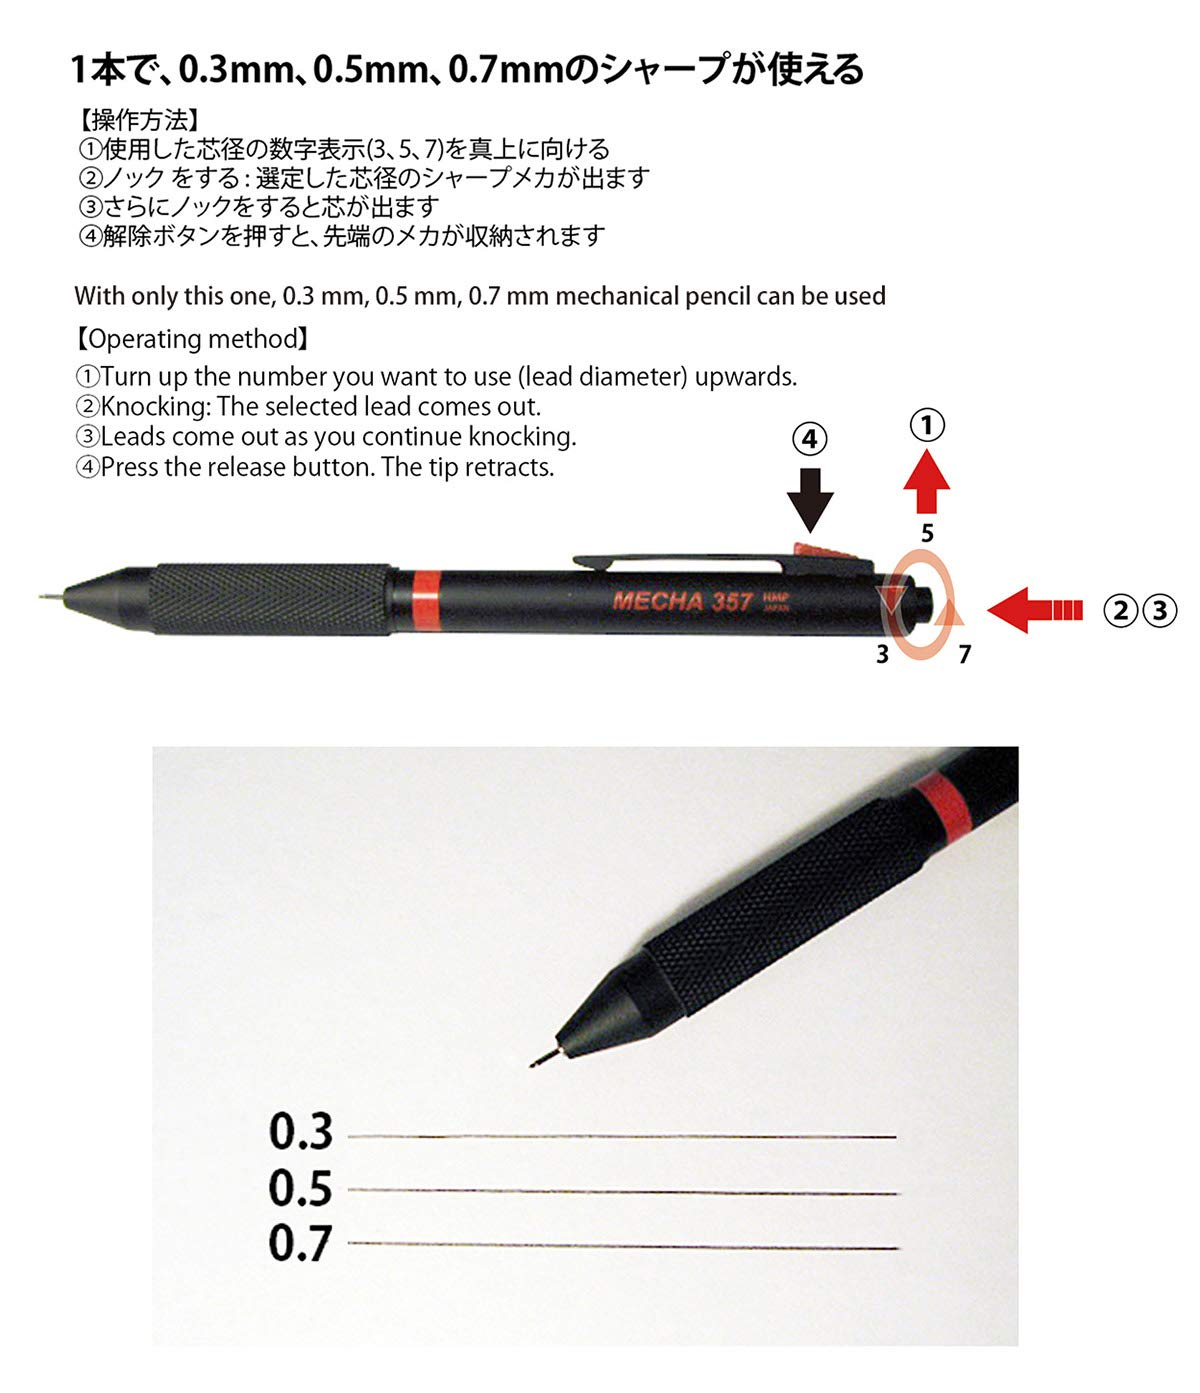 57 POWERS MECHA 357 Multi Mechanical Pencil 3in1 0.3mm 0.5mm 0.7mm Japan (BLACK) by HMP (Image #7)